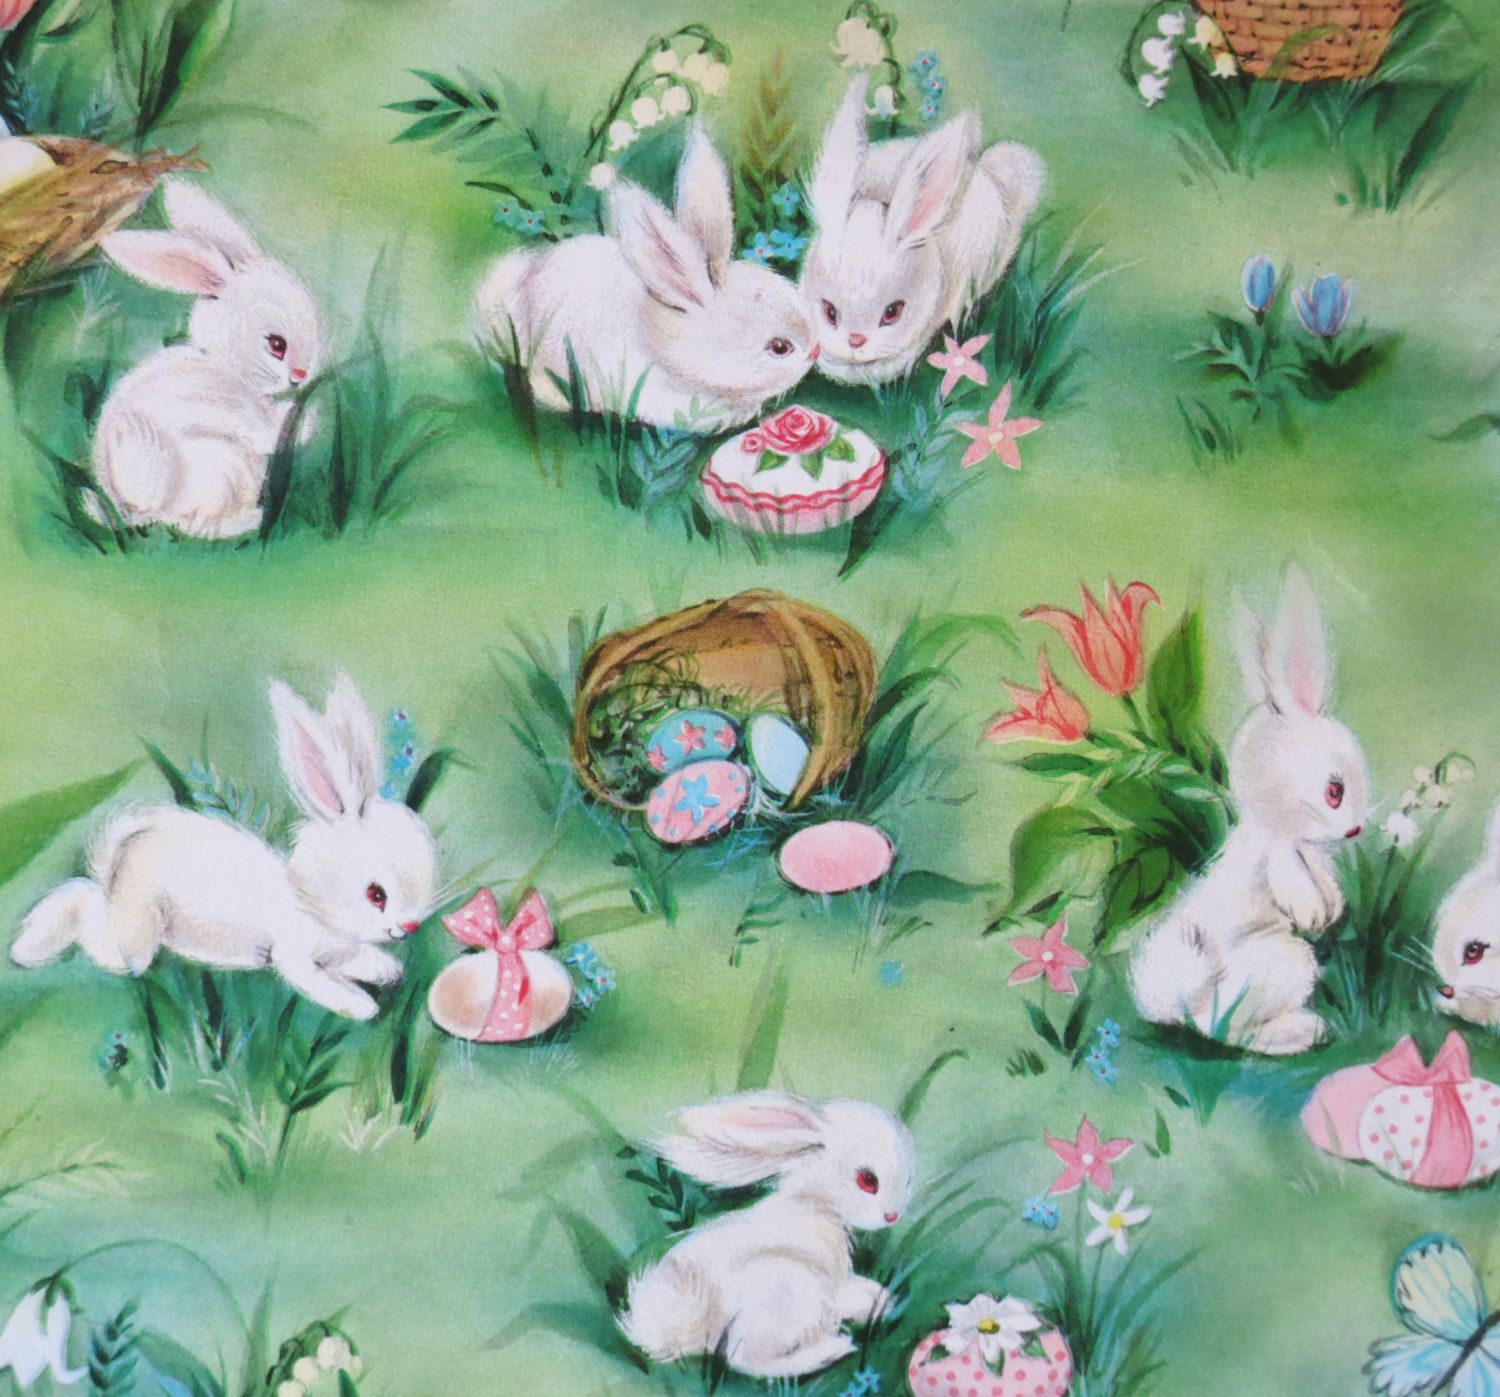 Vintage hallmark easter gift wrap wrapping paper bunny time vintage hallmark easter gift wrap wrapping paper bunny time adorable white bunny rabbits and eggs 1960s wrapping papers easter and wraps negle Image collections